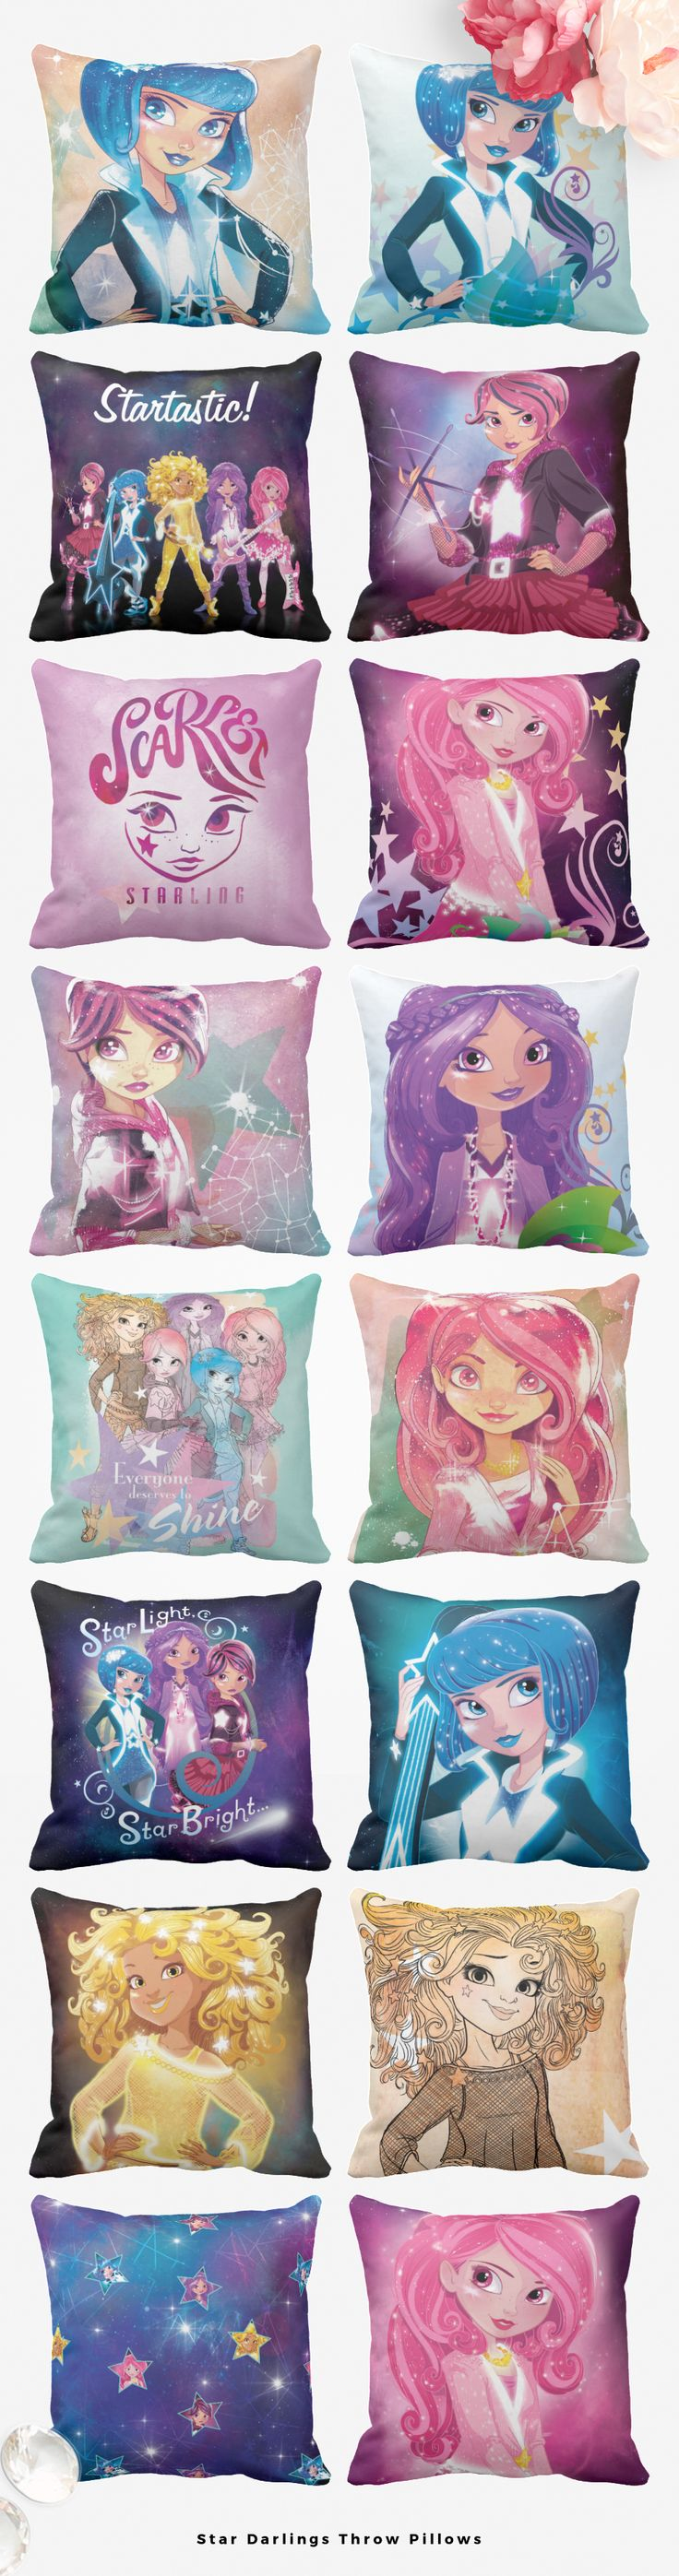 Star Darlings throw pillows for decorating a tween girl s bedroom. Just For Tween Girls ...